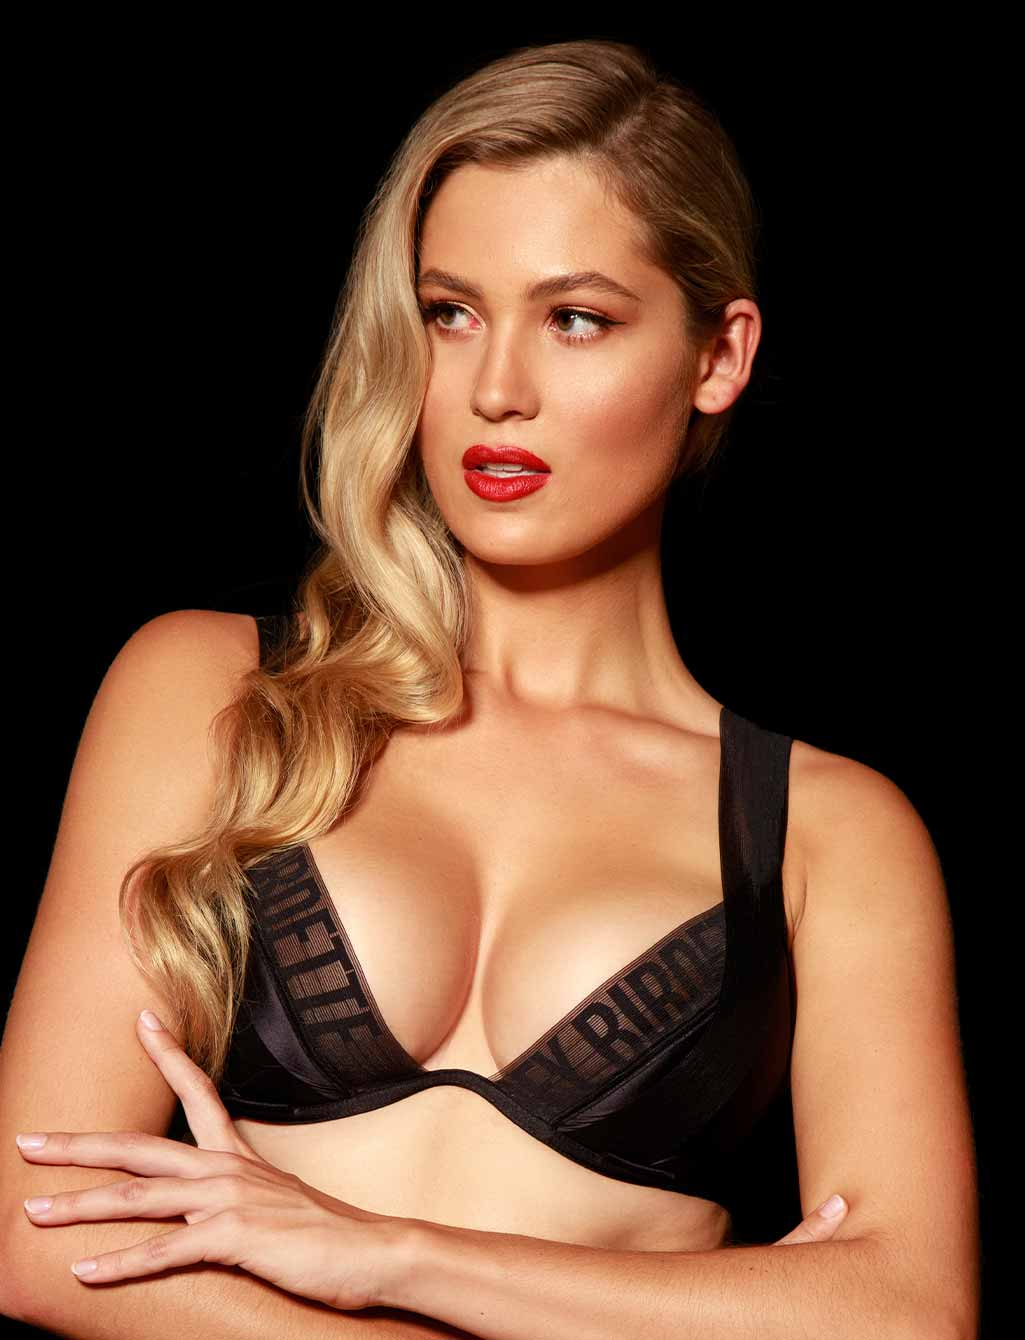 Blake Black Push Up Bra - Shop Lingerie | Honey Birdette